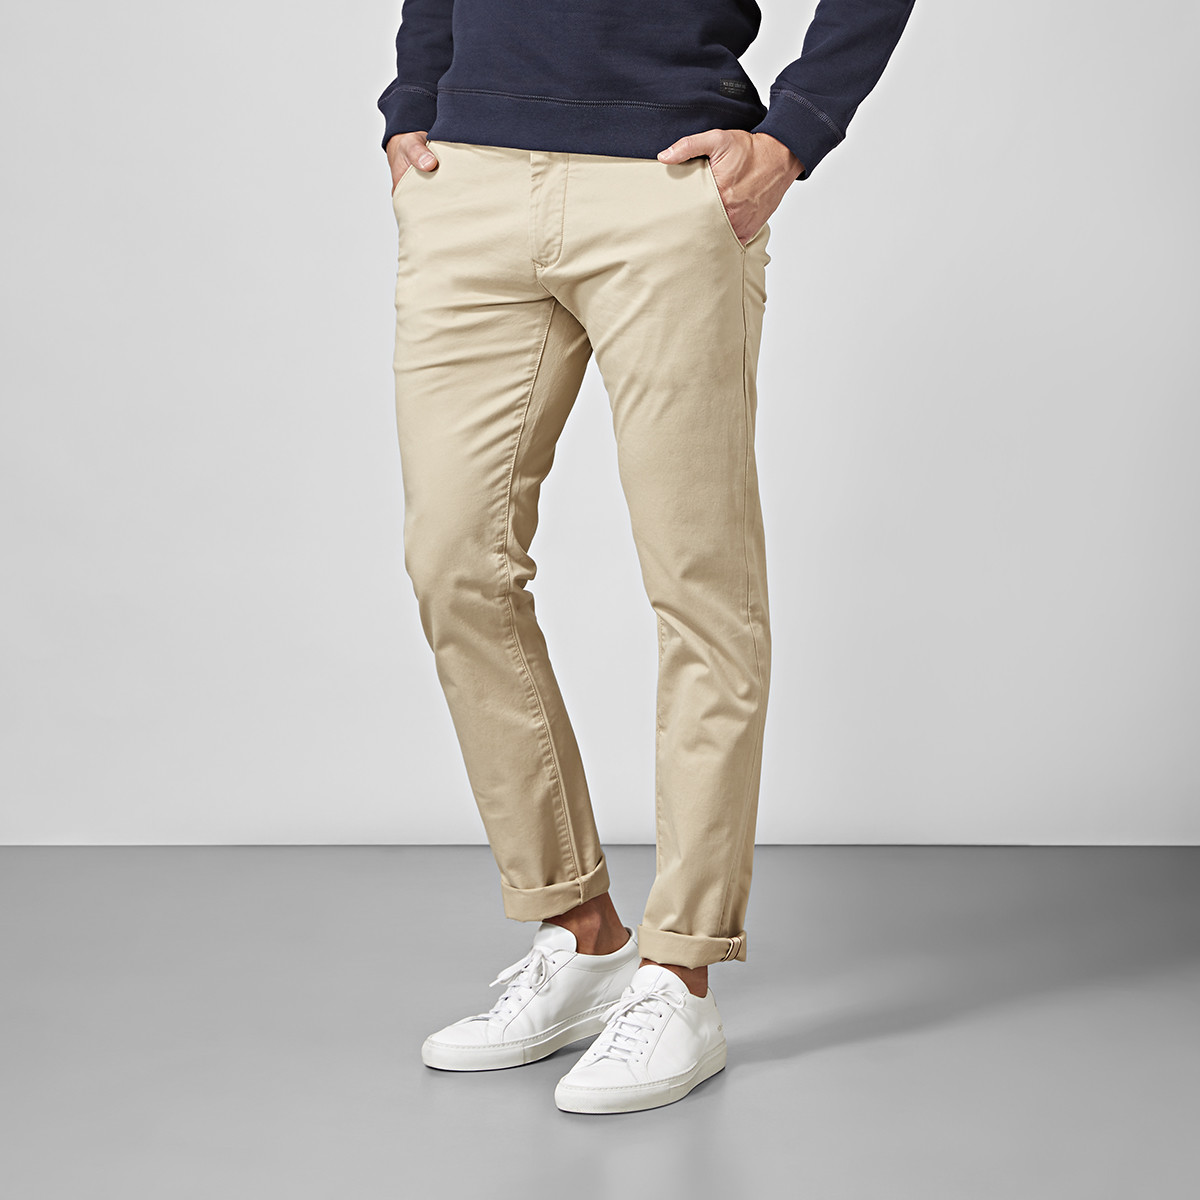 Slim fit chinos - beige | East West | Brothers.se